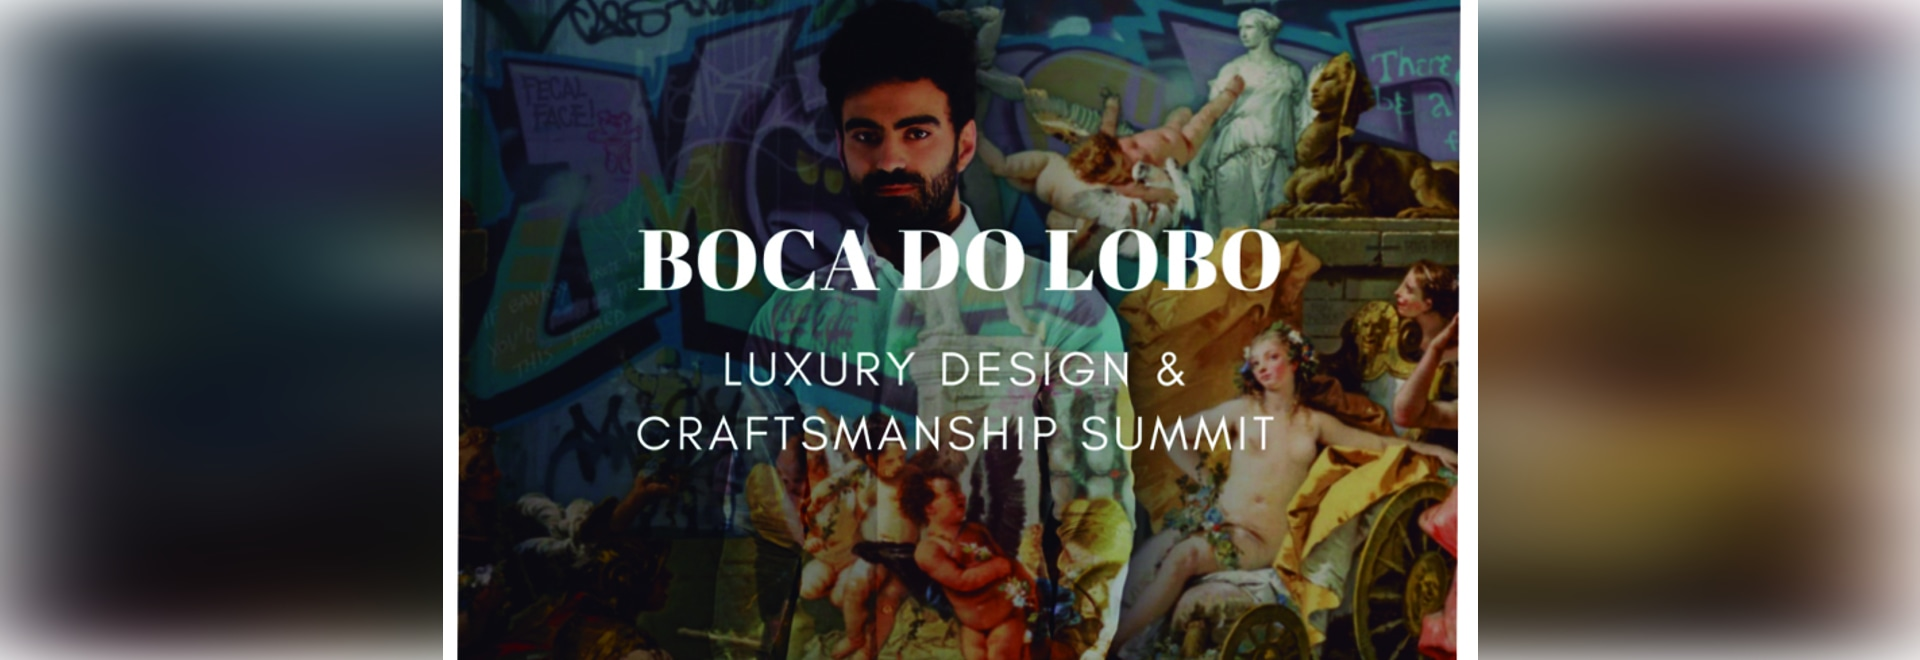 Luxury Design & Craftsmanship Summit Speakers: Boca do Lobo